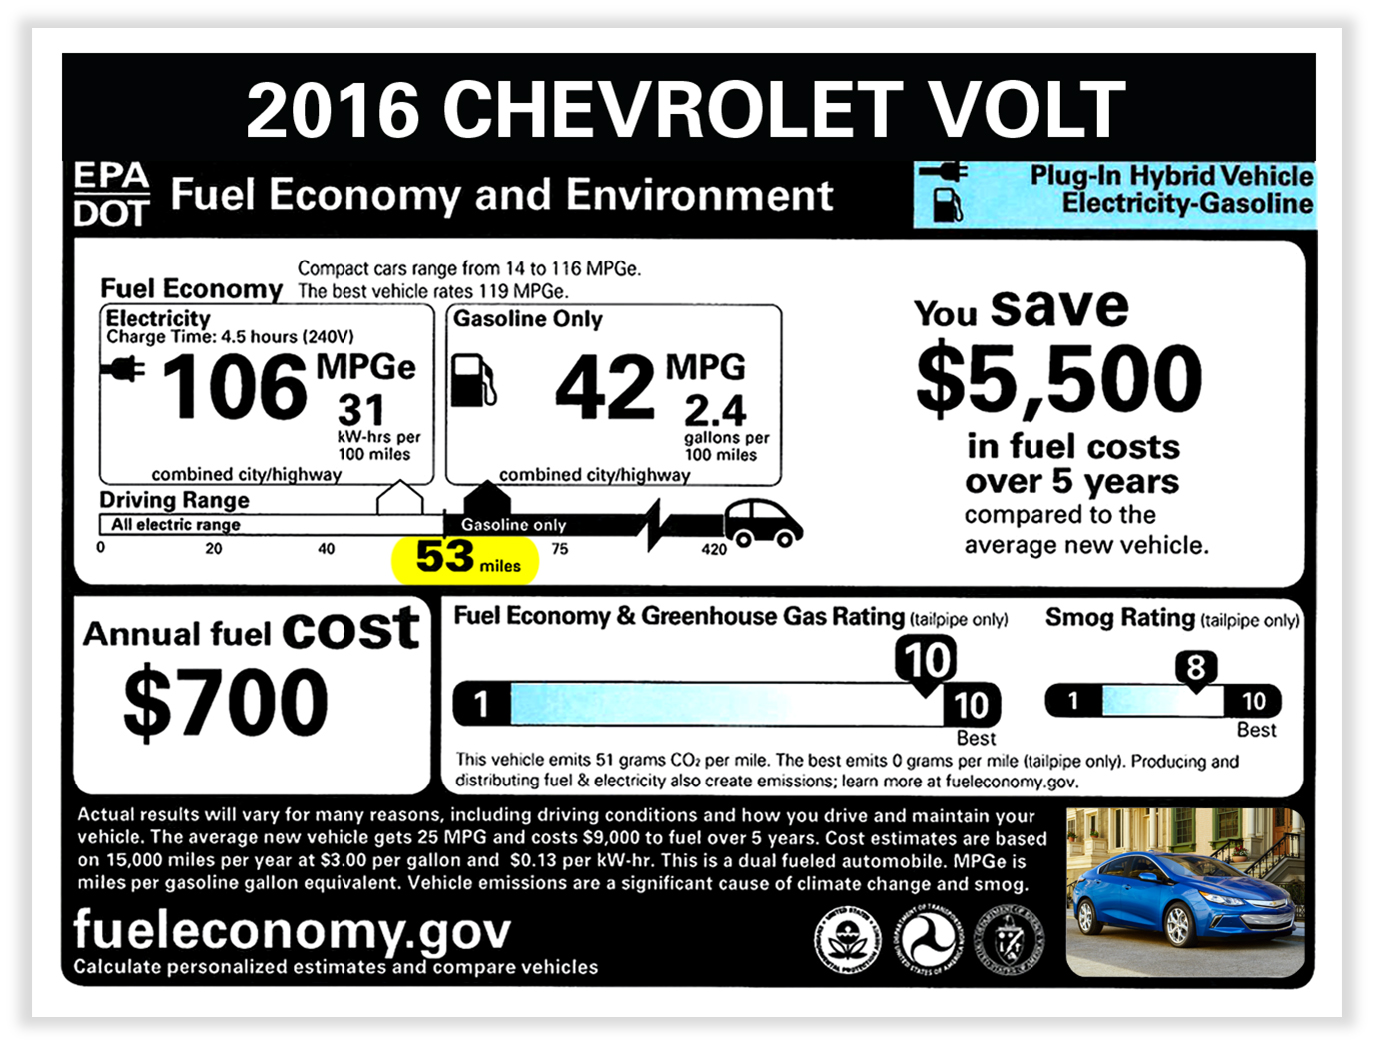 The Results Are In: More Range for the 2016 Volt